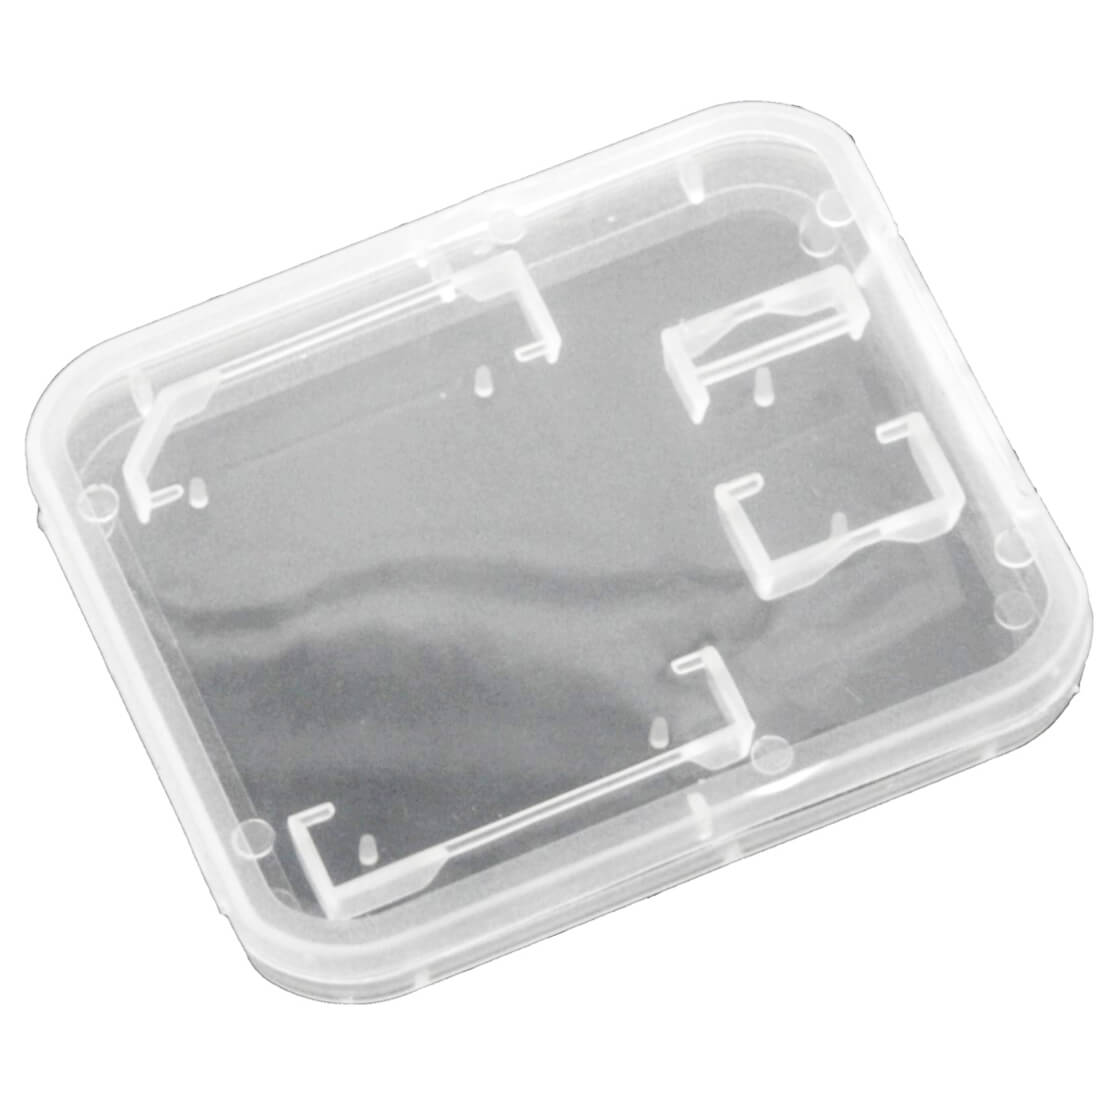 Storage Box clear for SD & microSD Memory Cards - кутийка за съхранение на MicroSD и SD карти